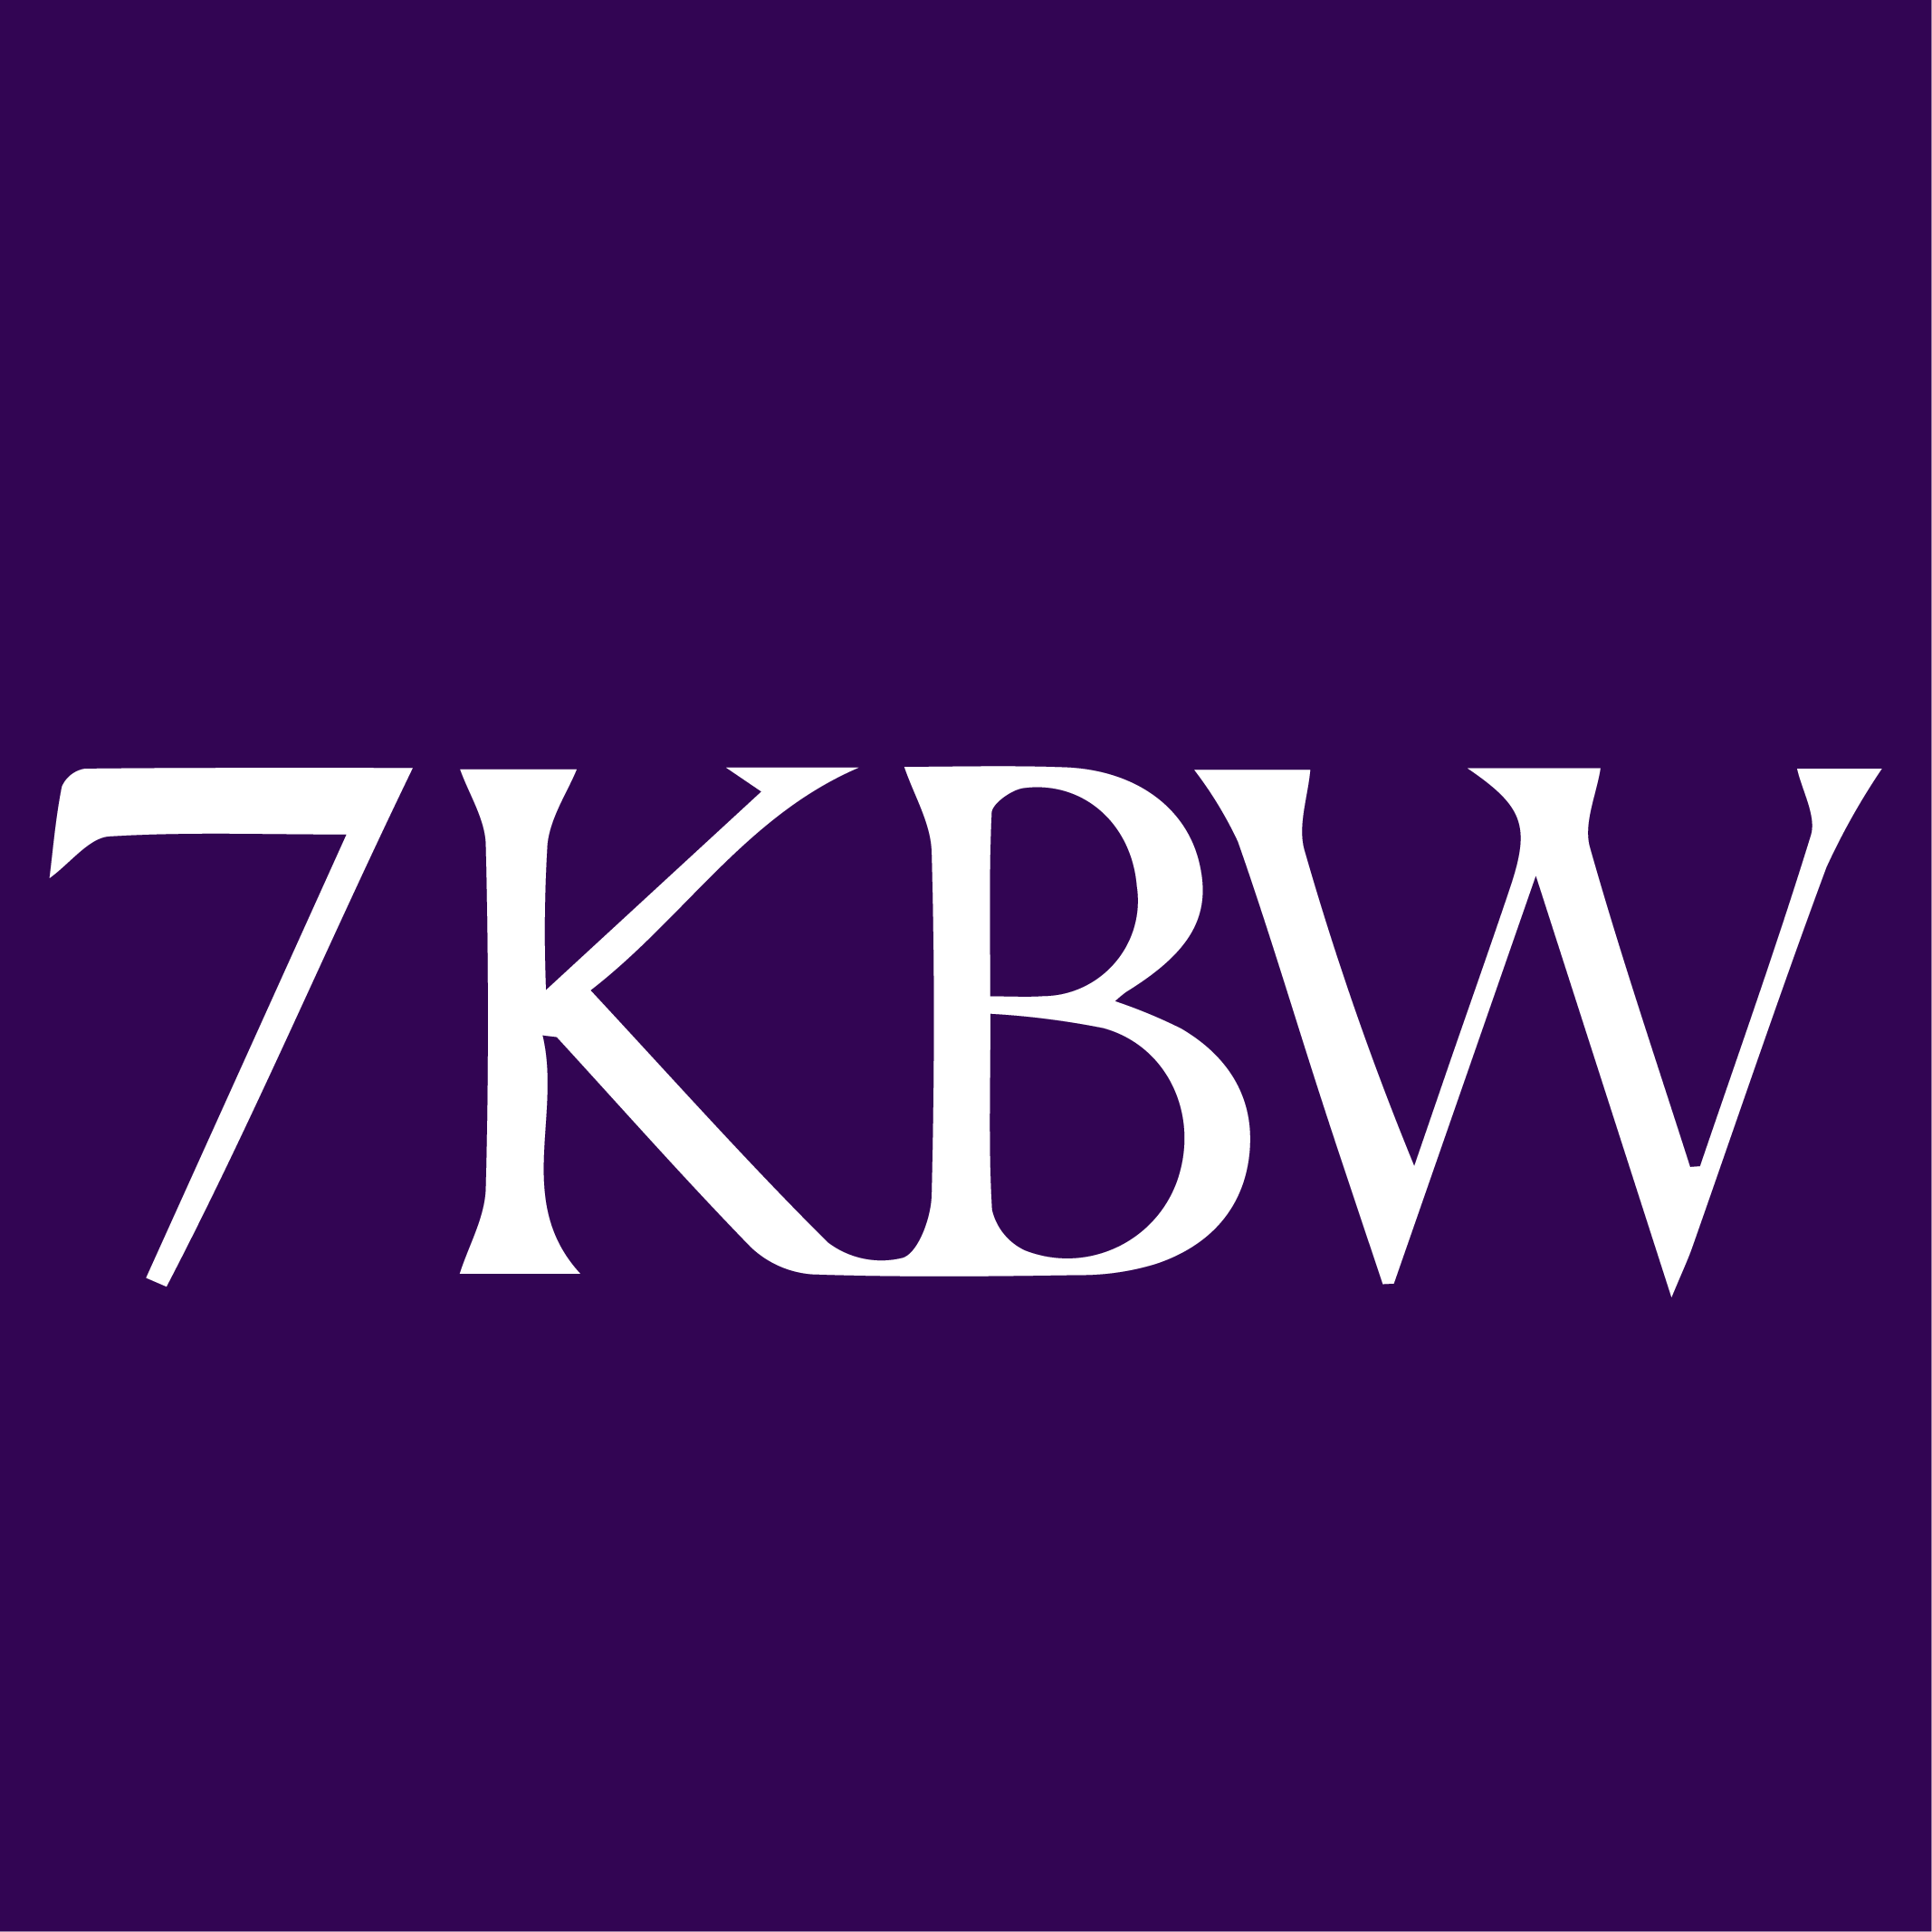 7KBW sponsors the CDR Autumn Litigation Symposium 2018